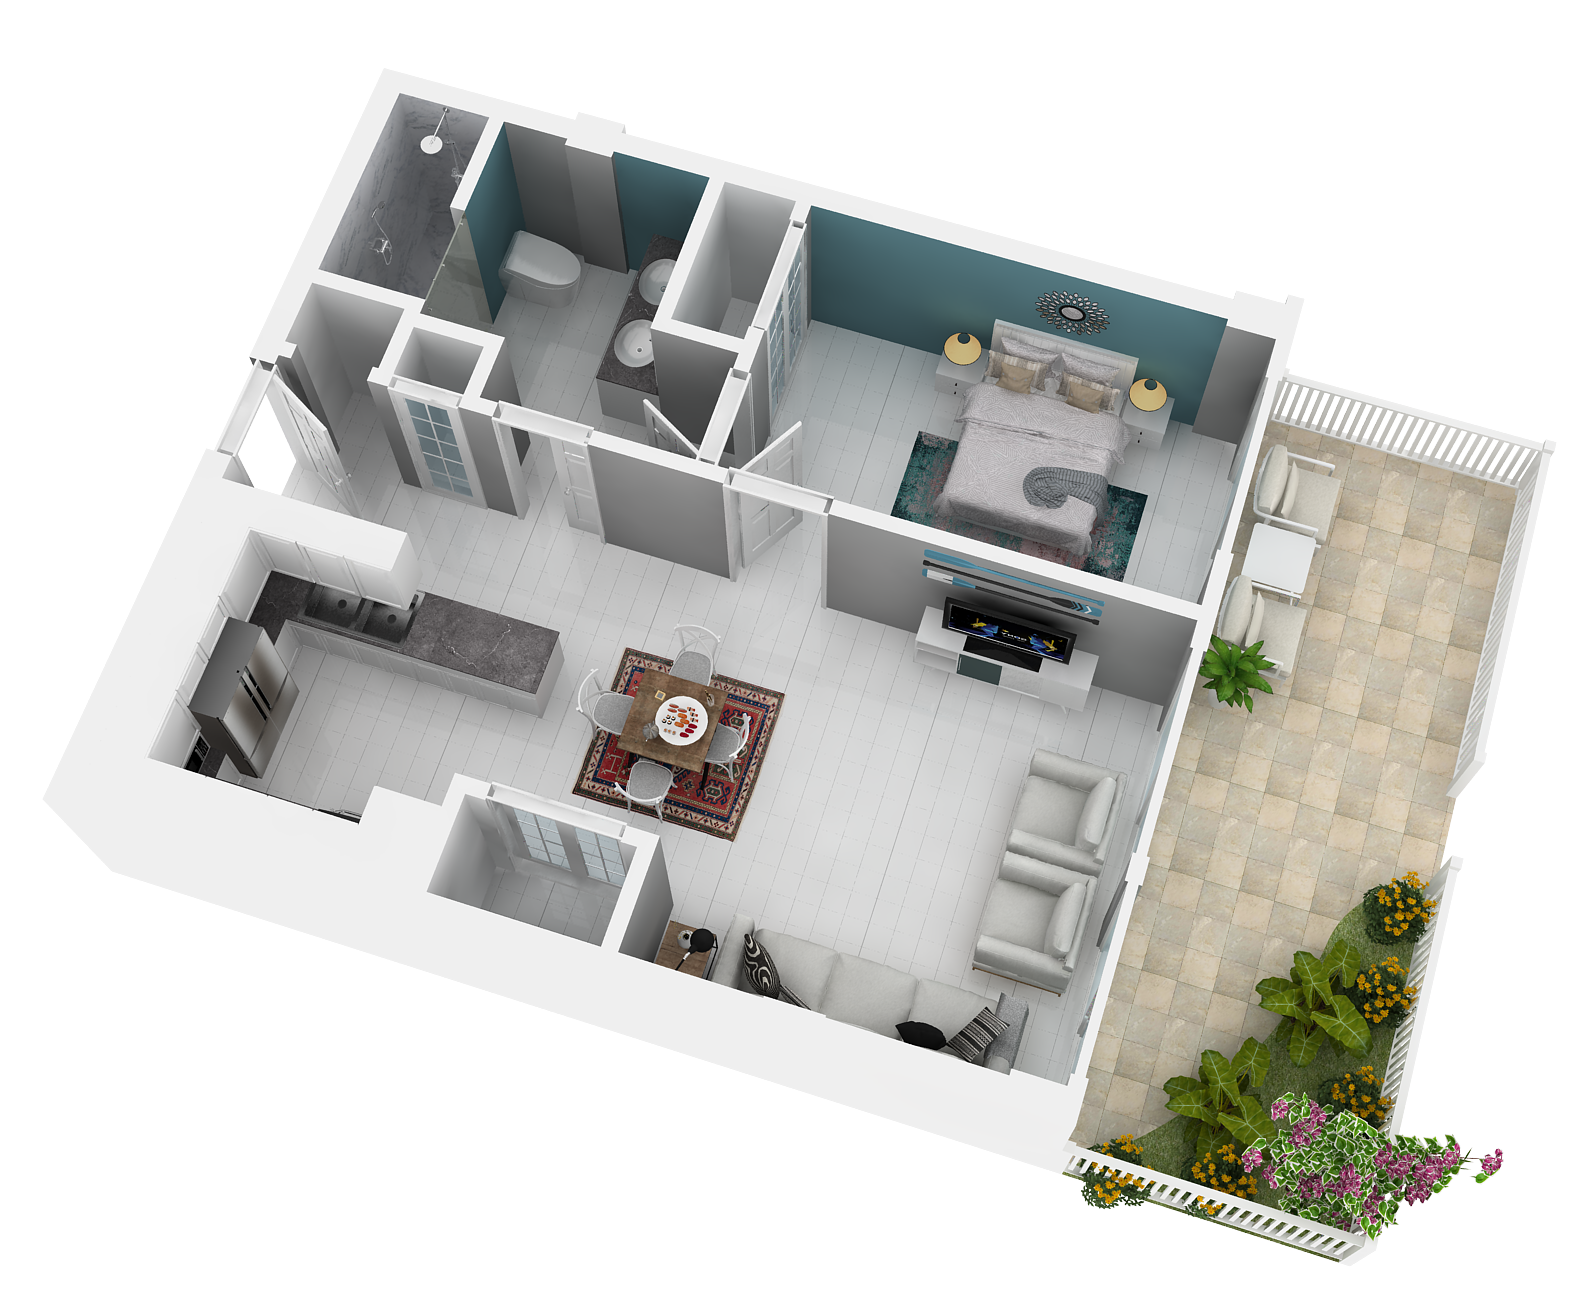 Ramona floor plan. Large main room, bedroom, kitchen, and balcony.